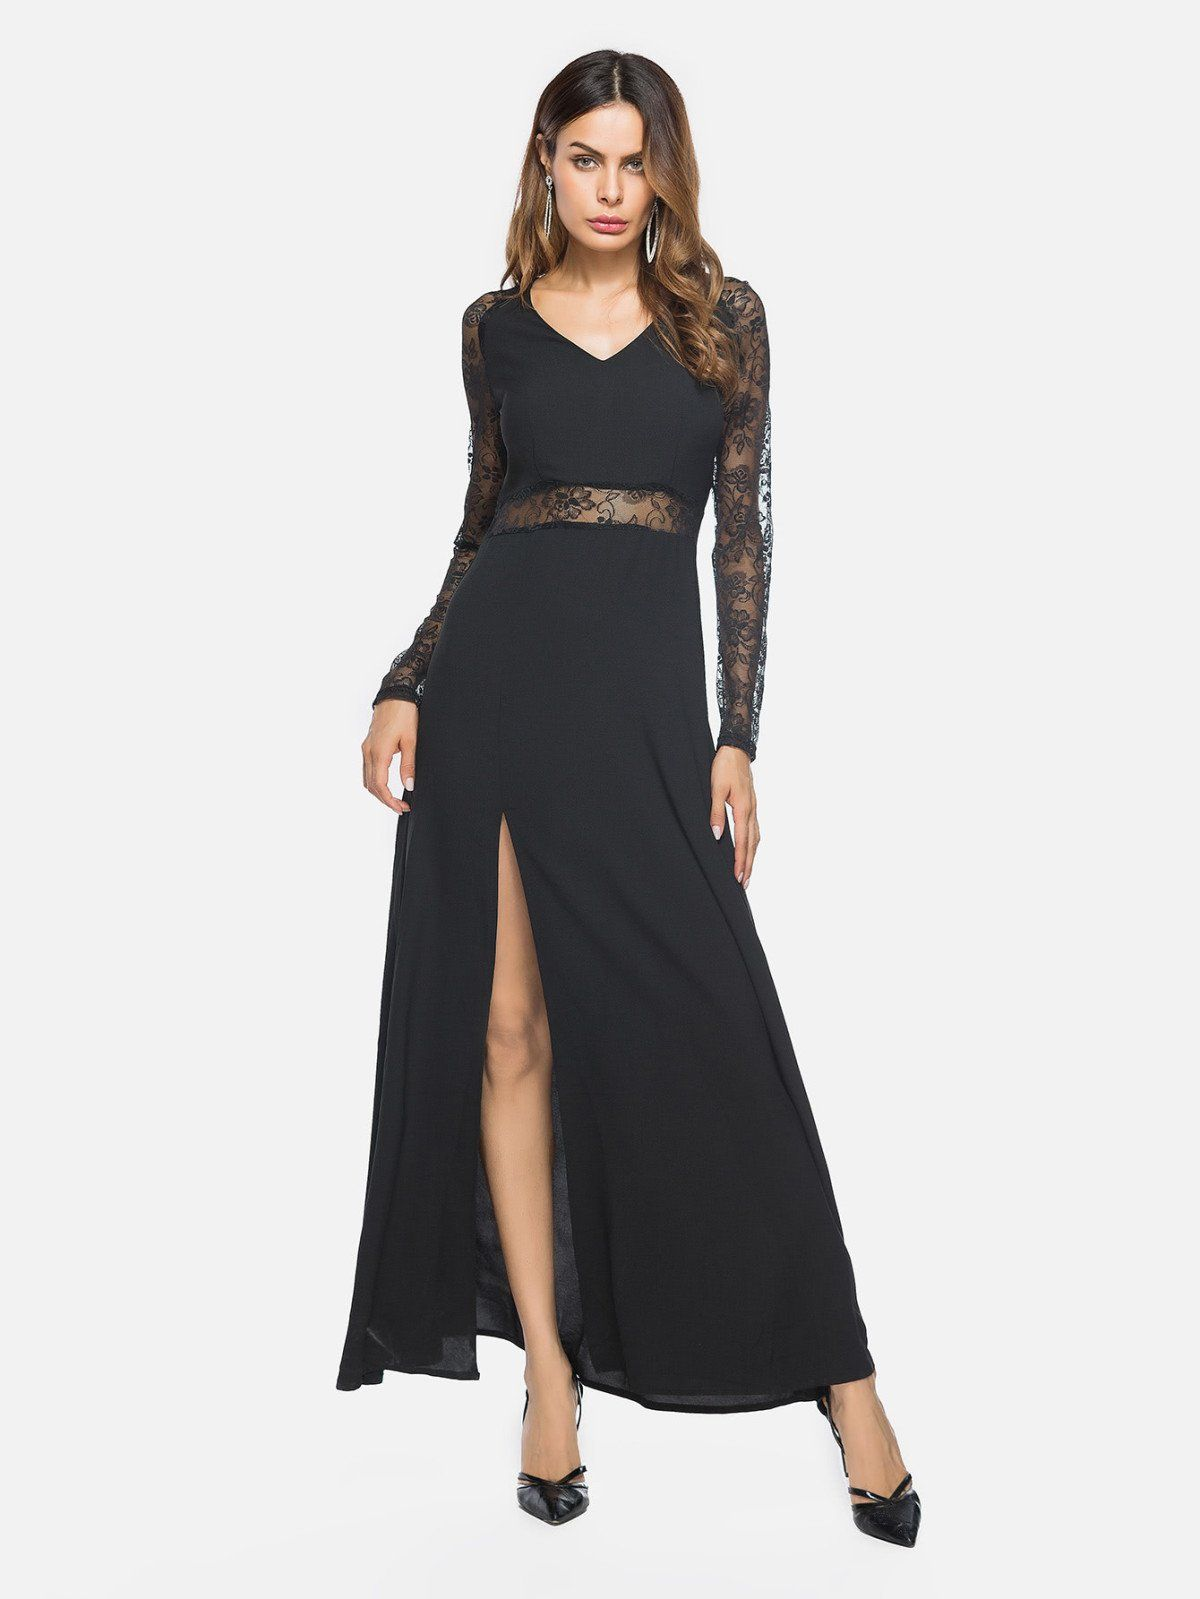 V neckline side split lace panel dress panel dress side split and